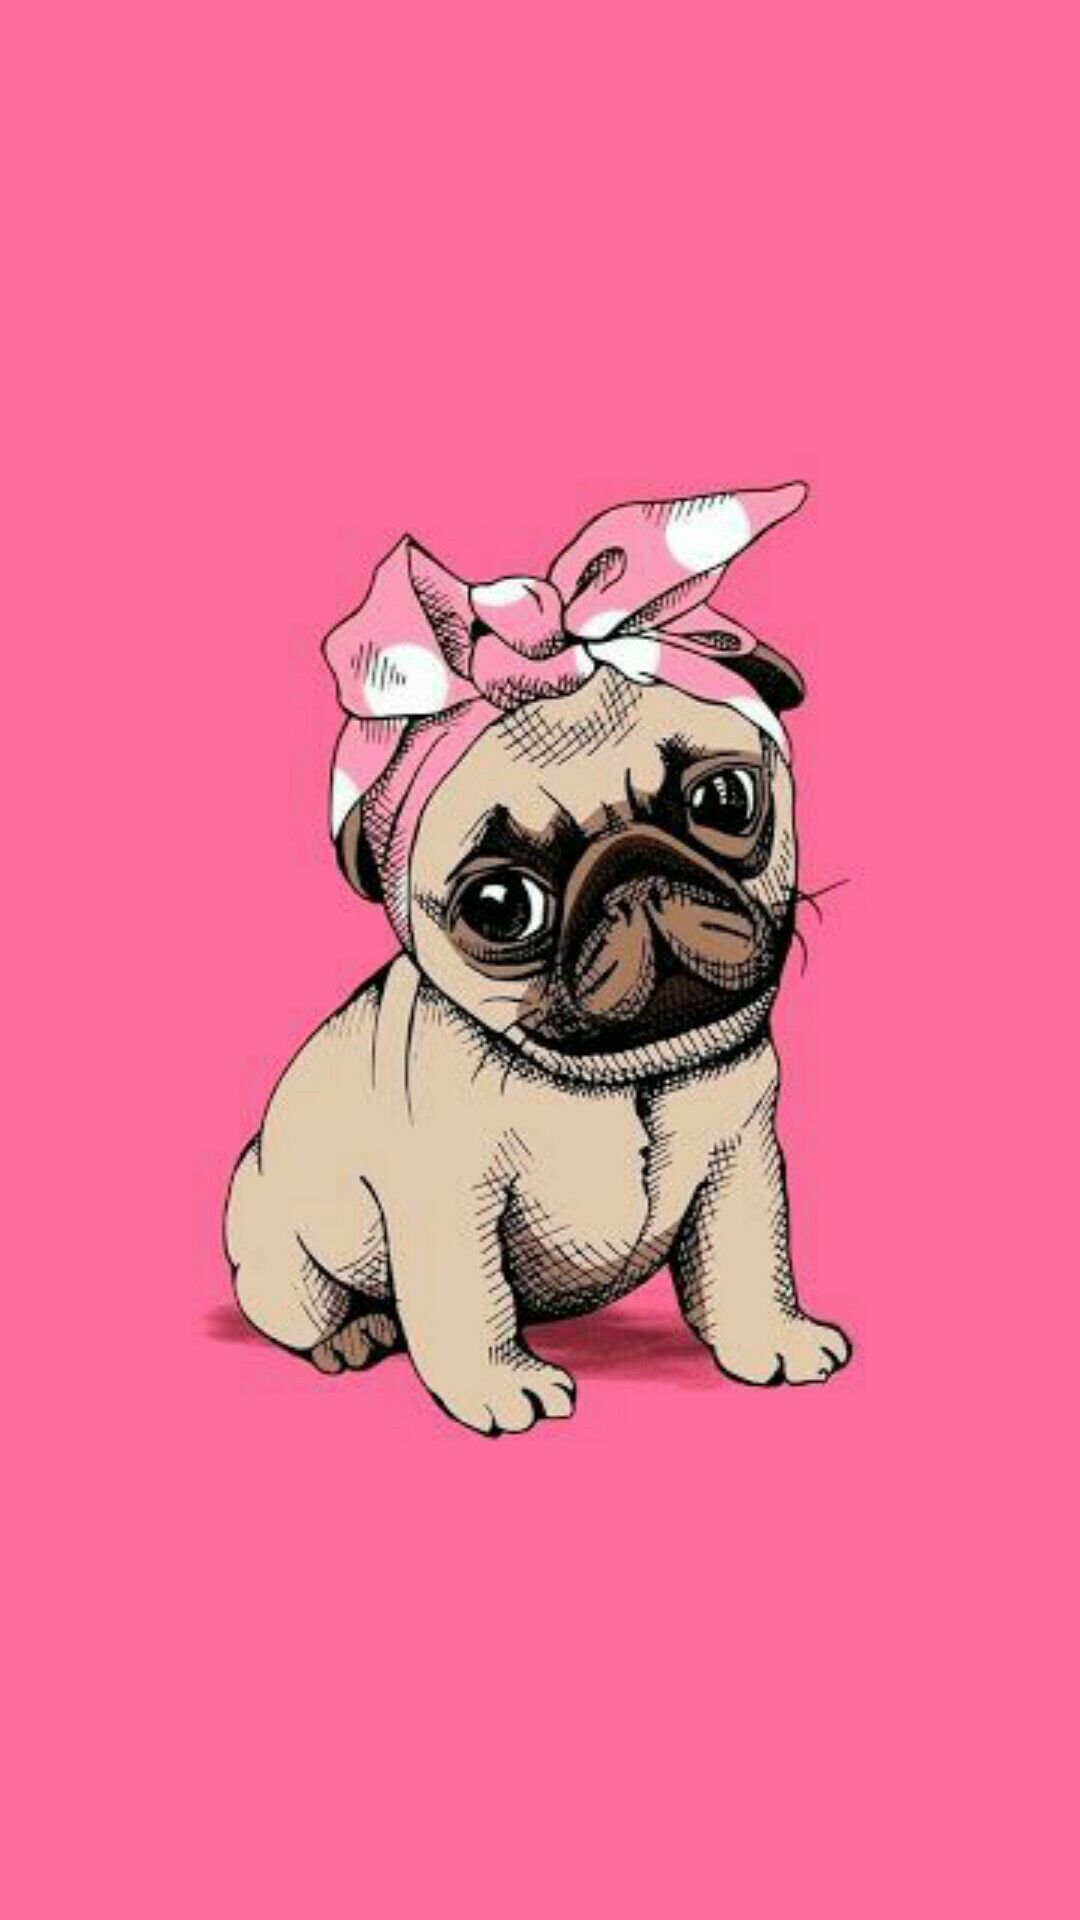 Dog Wallpapers Are Added Beautiful And Cute Dogs For Your Mobile Phone Follow Us On Facebook For More Cute Dog Wallpaper Pug Wallpaper Dog Wallpaper Iphone